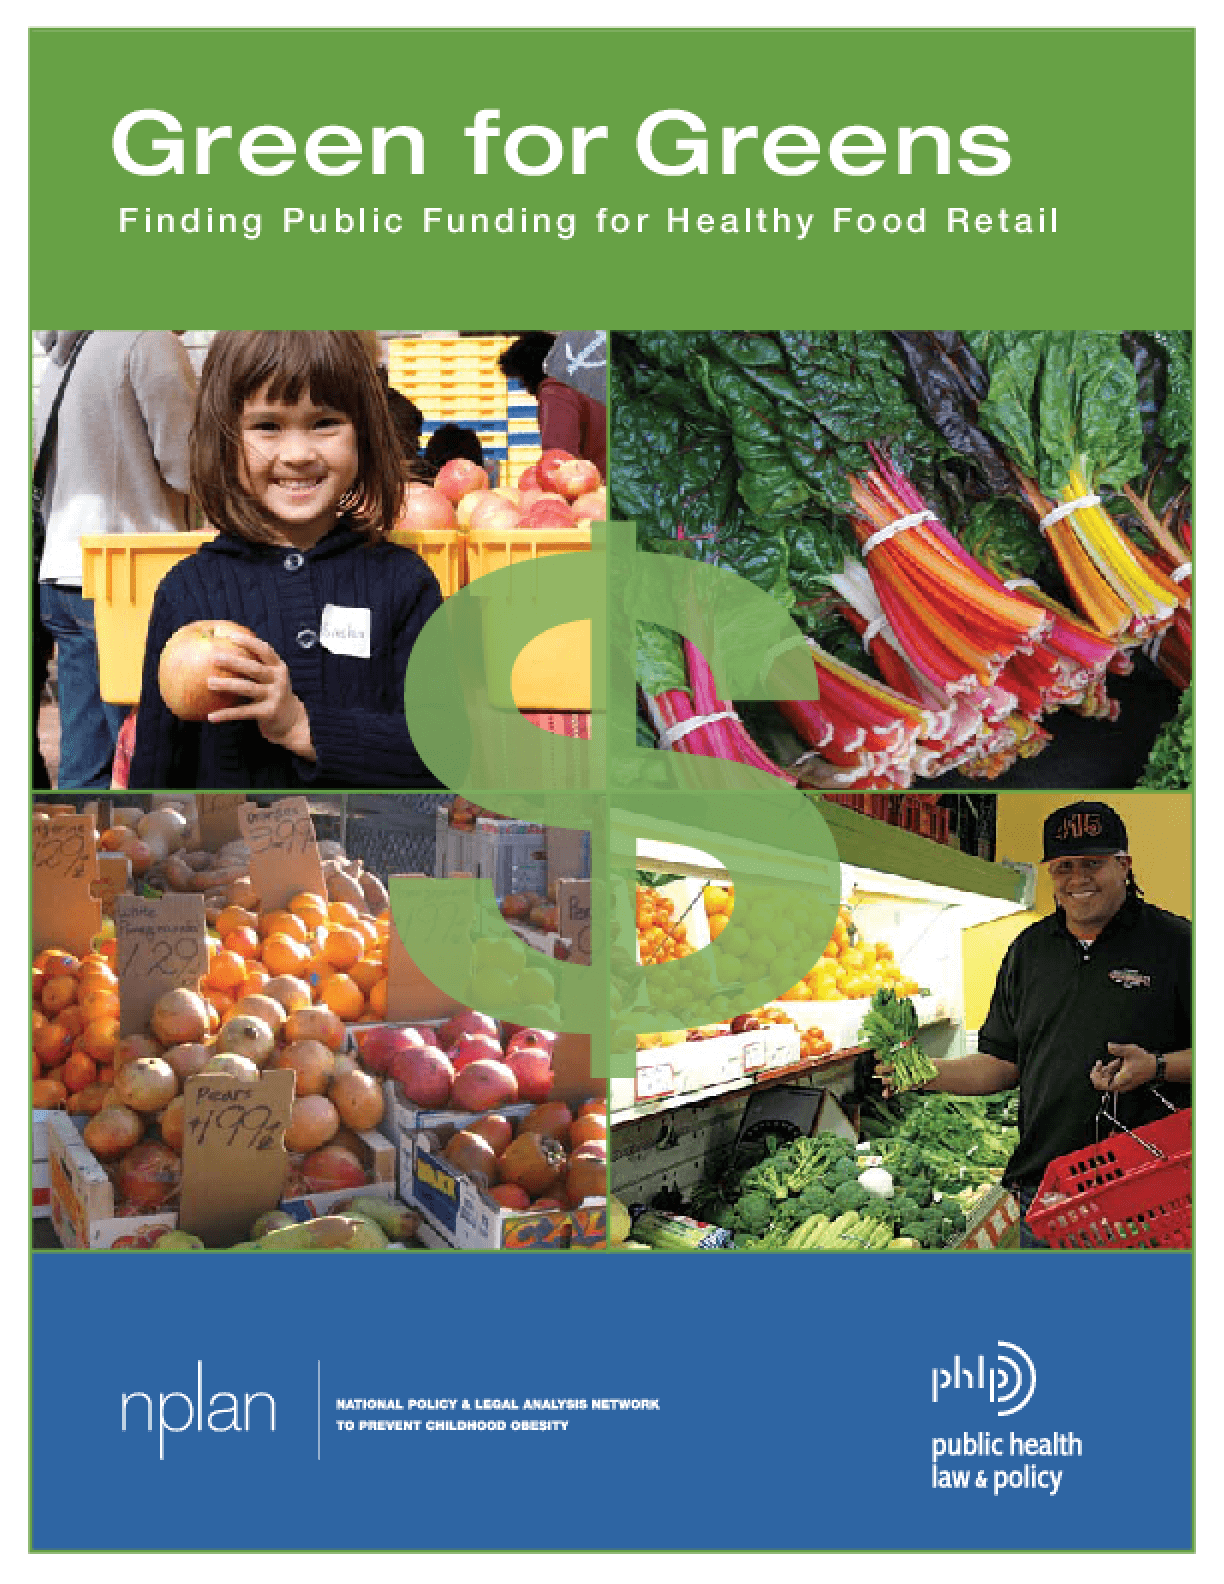 Green for Greens: Finding Public Financing for Healthy Food Retail